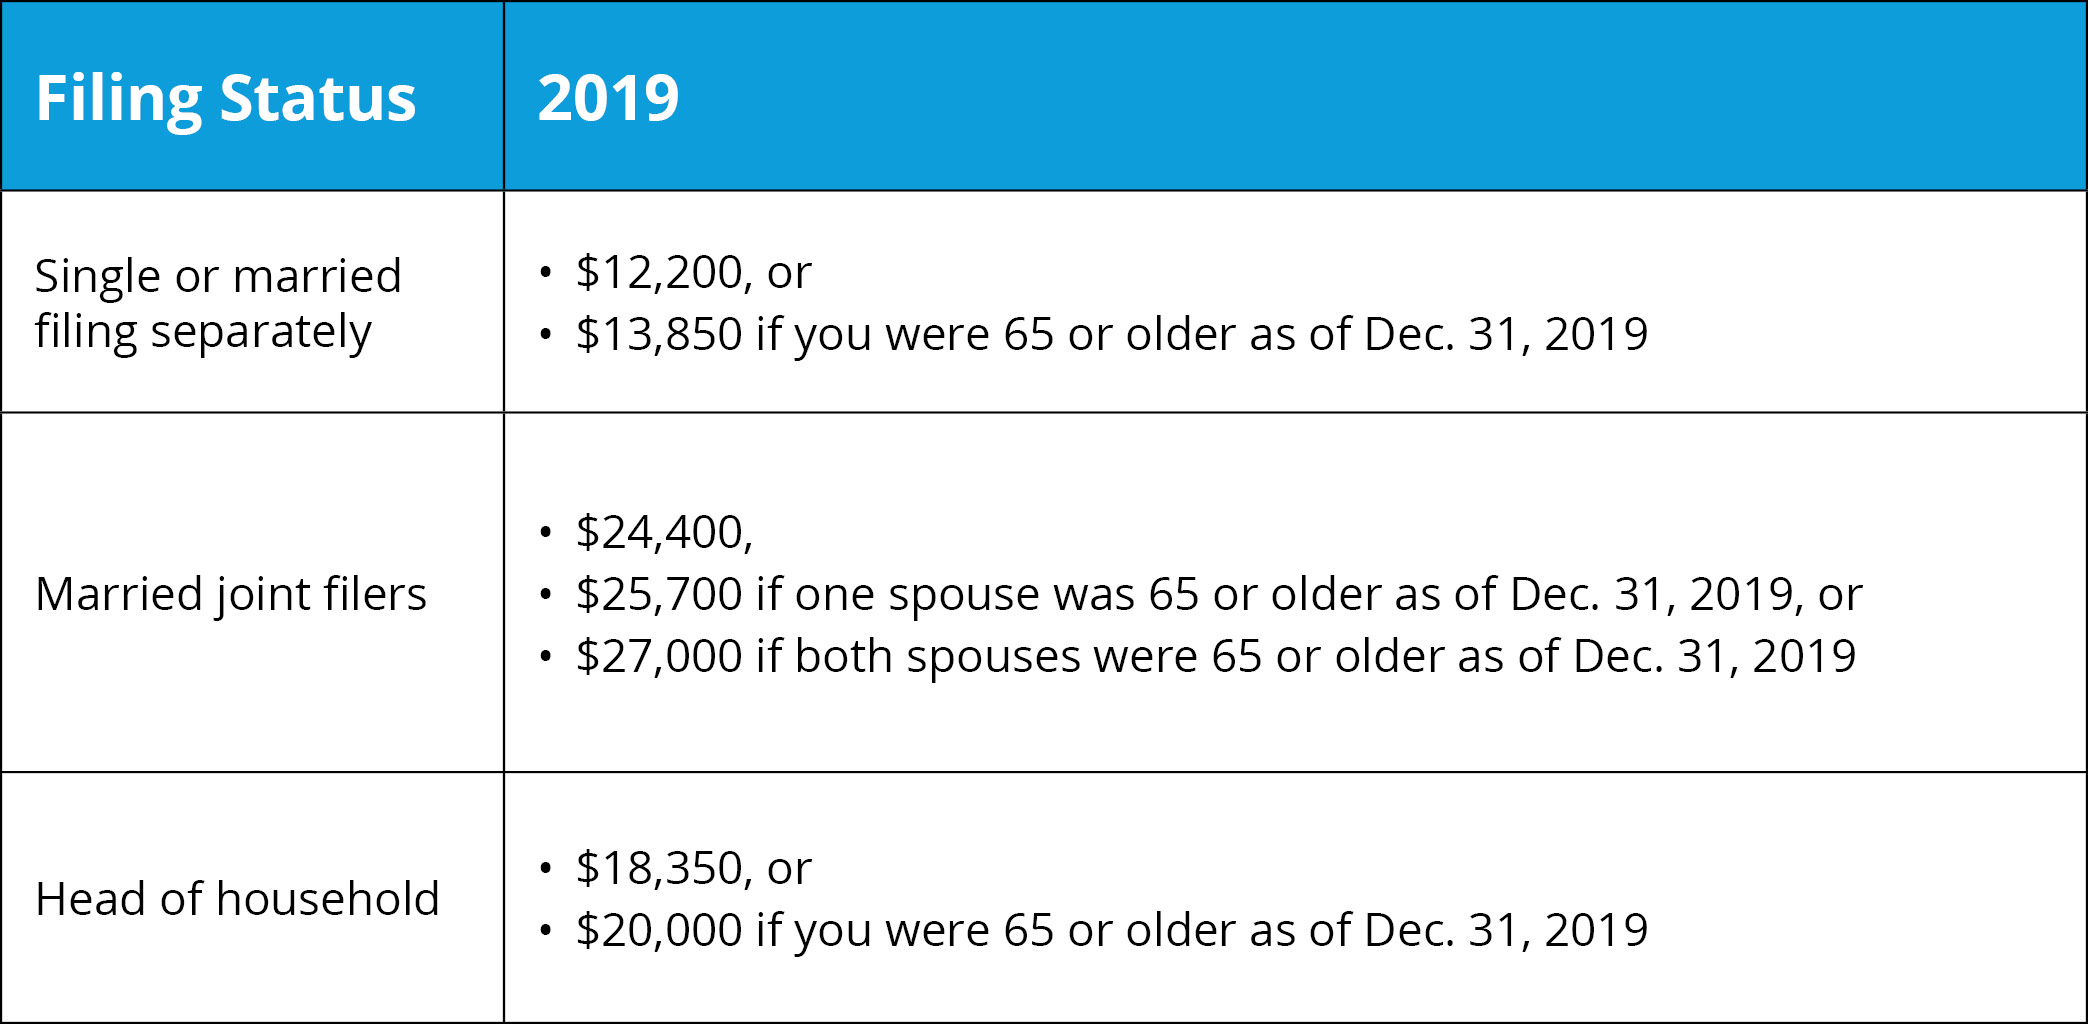 2019 Standard Deduction Amounts